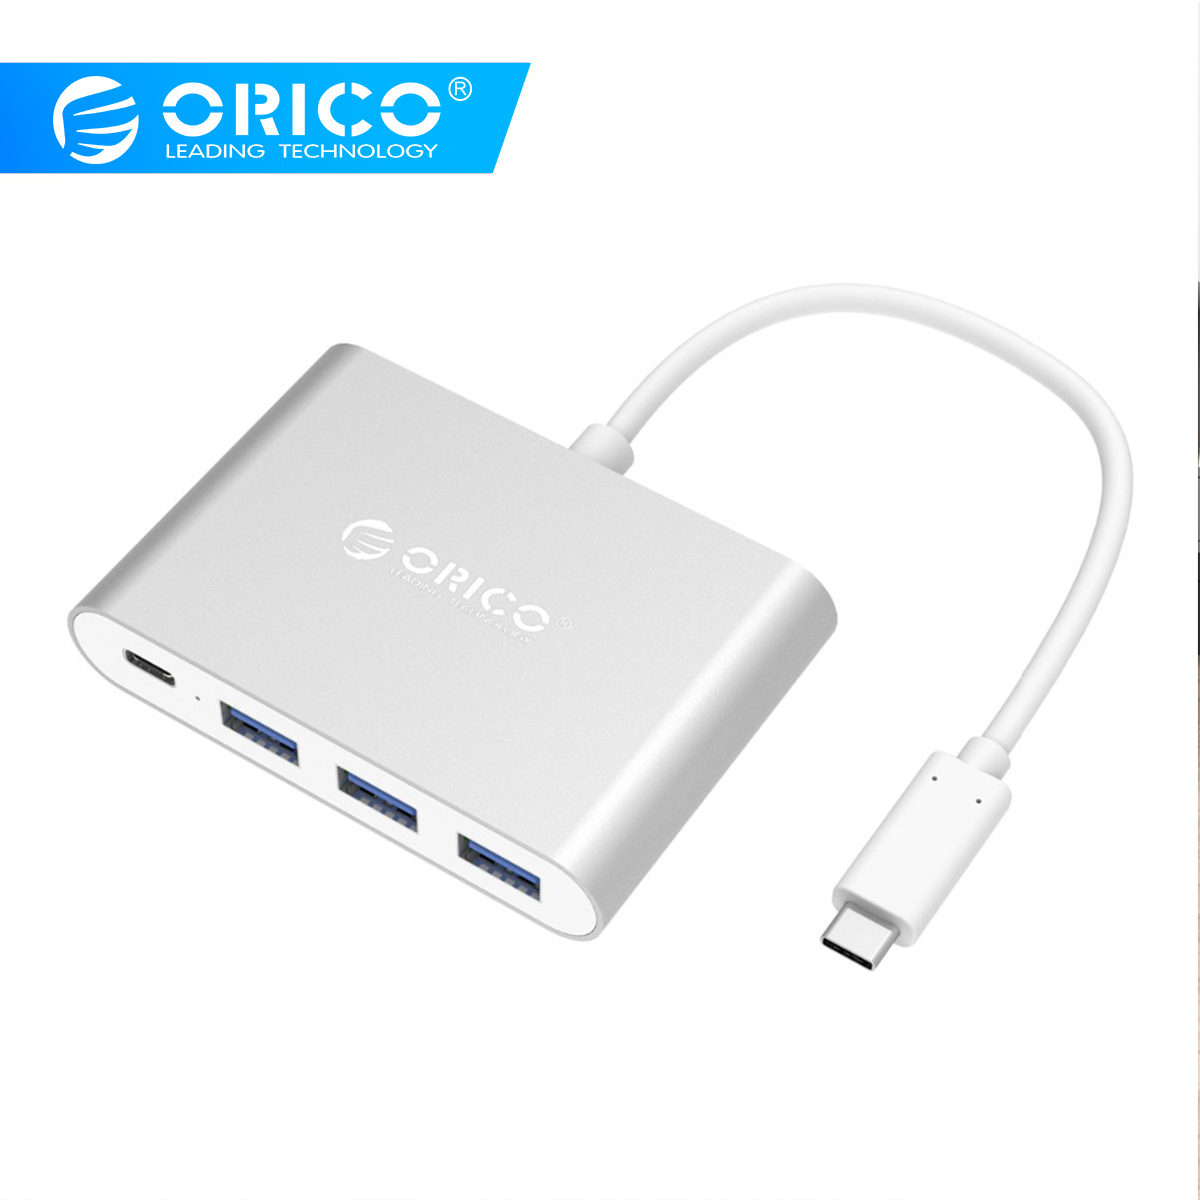 ORICO Aluminum Type-C to USB PD Charging HUB USB3.1 Gen1 5Gbps High Speed AluminumORICO Aluminum Type-C to USB PD Charging HUB USB3.1 Gen1 5Gbps High Speed Aluminum